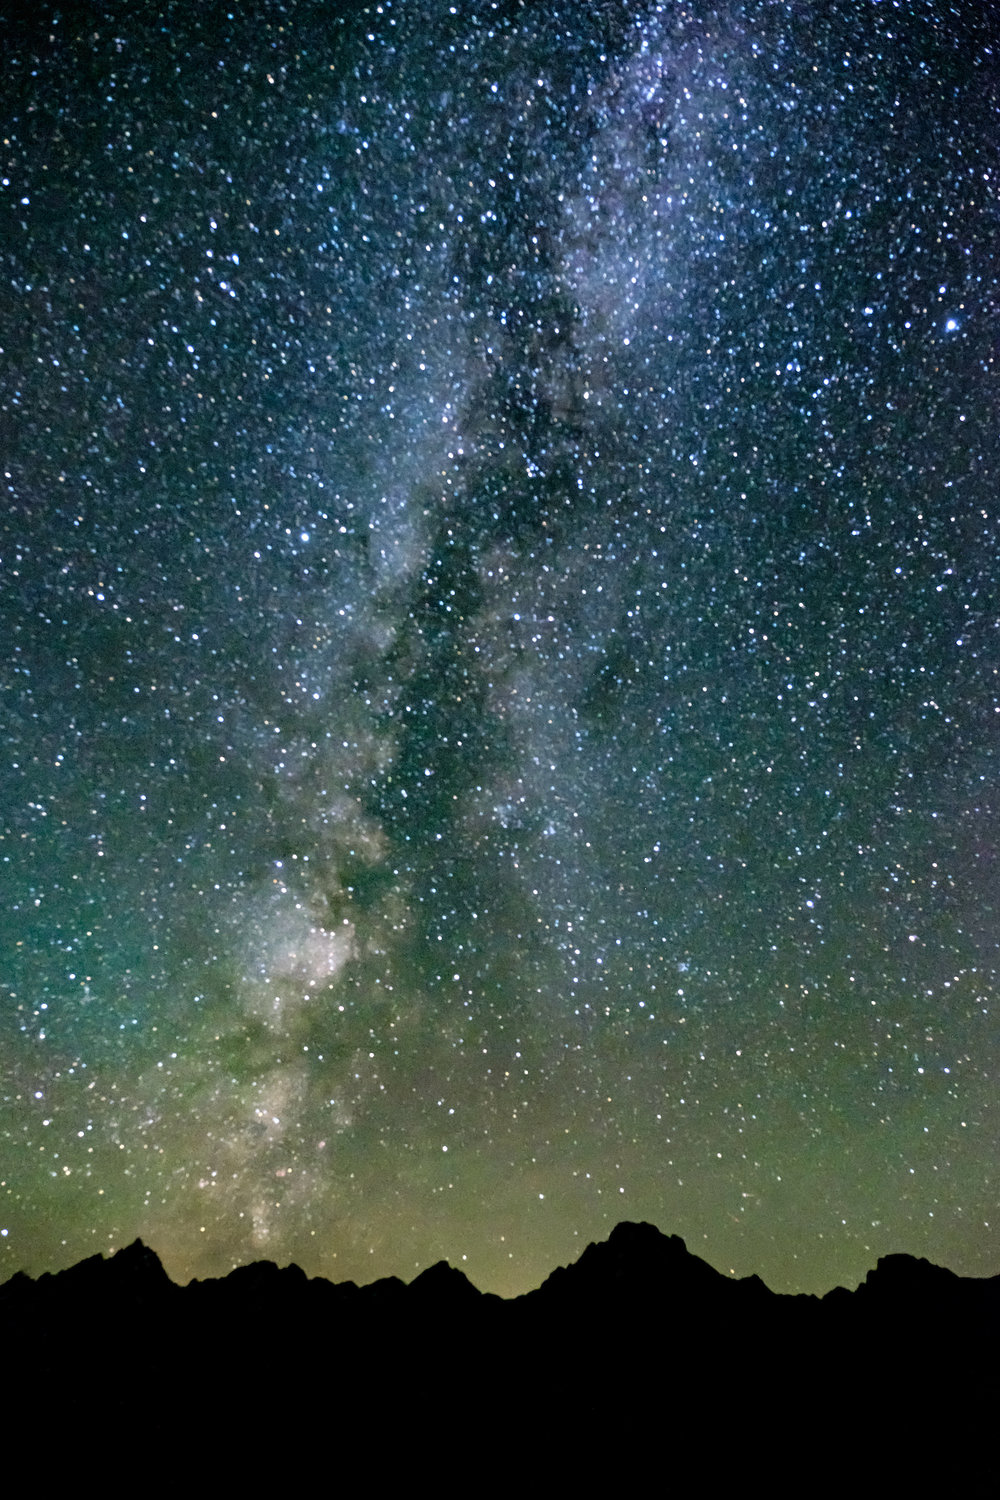 The Milky Way Galaxy in Grand Tetons National Park in Wyoming.